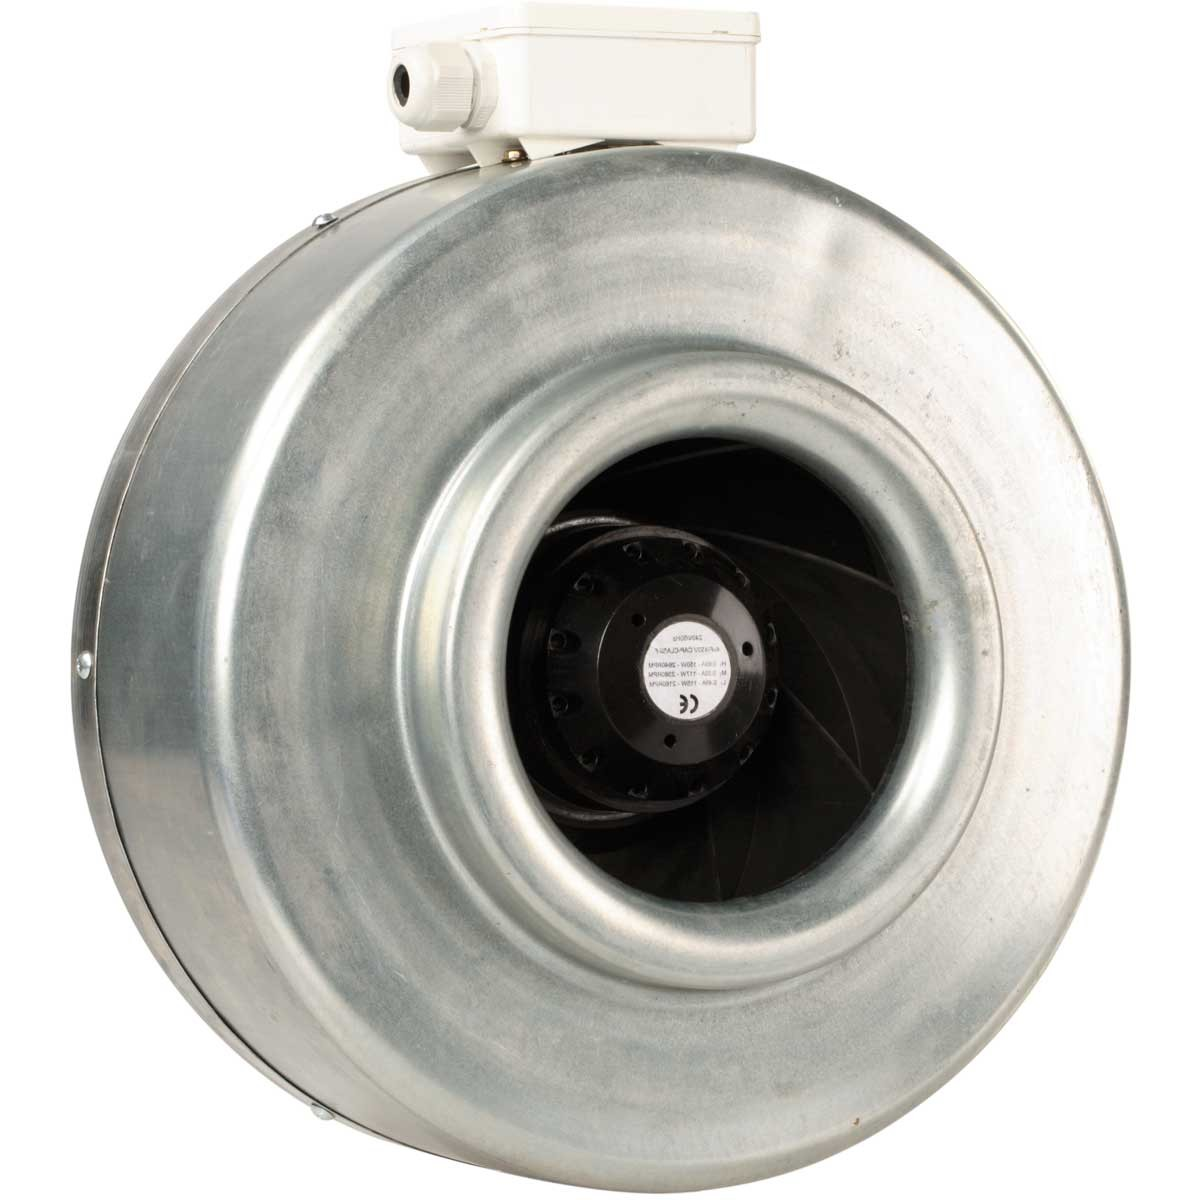 Jetflow-HIT Metal inline - 150mm